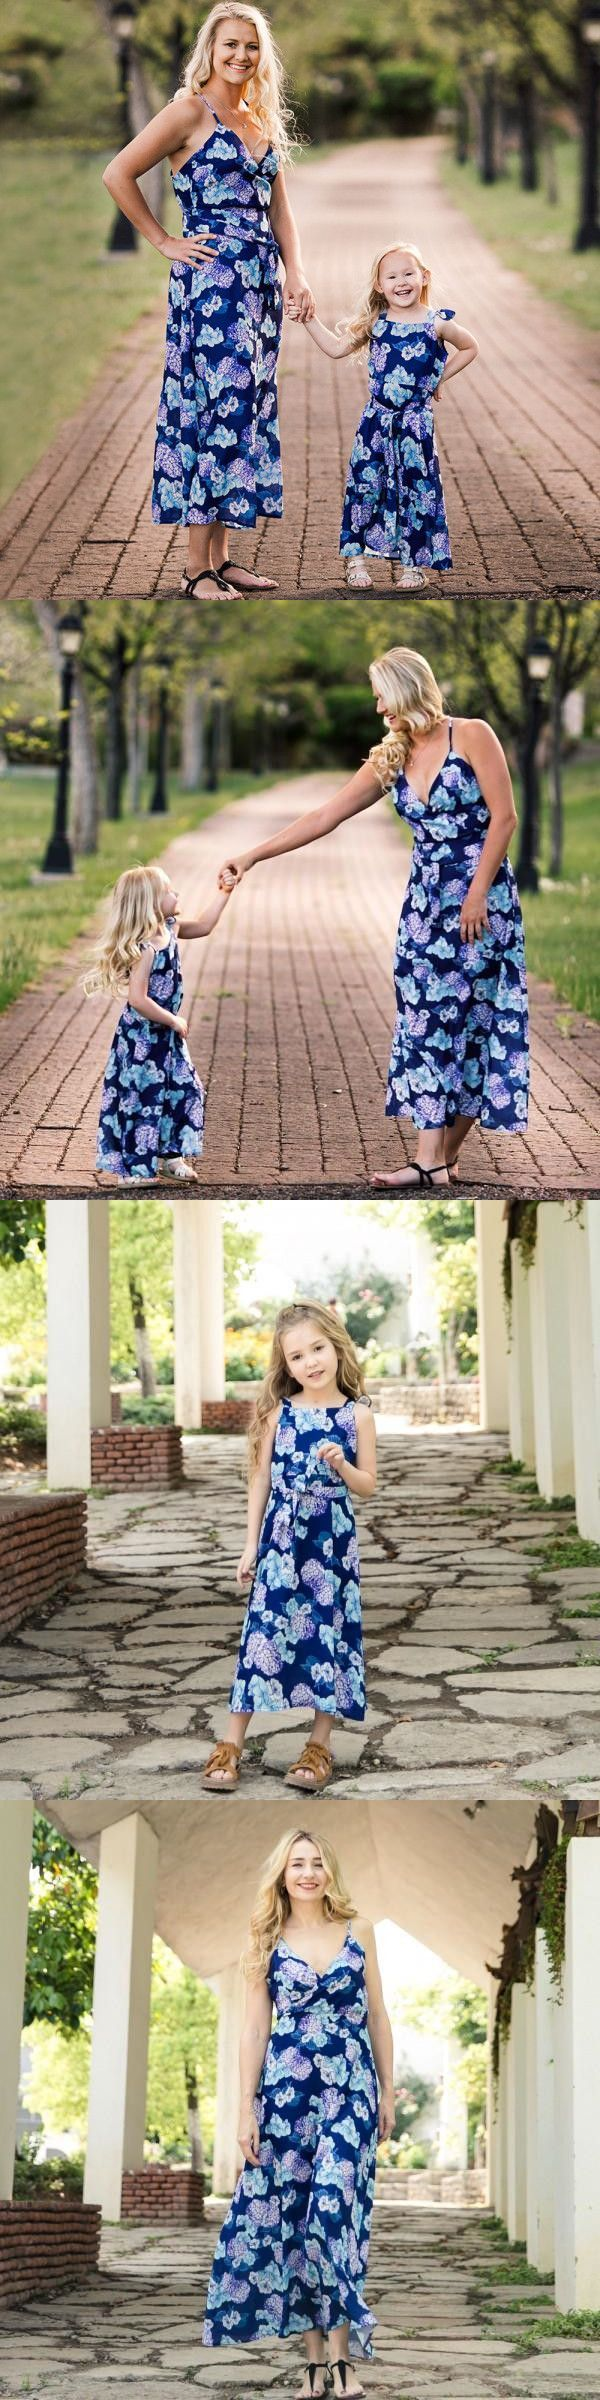 Vintage Floral Printed Strappy Maxi Dress in Blue for Mom and Me $25.99 | baby shower dress for mom winter blue #matchingoutfit #toddles #kid #baby #momandbaby #dadandbaby #family #cute #clothing #babysuit #romper #tshirt #tee #dress #fashionoftheday #picoftheday #love #bikini #summer #outfit #deal #wholesale #patpat #mother #matchingdress #womensfashion #dresslikemommy #matchymatchy #mommy #dresses #matchyfamily #daughter #matchingoutfits #motherdaughter #mommyandme #coordinating #matching #mom